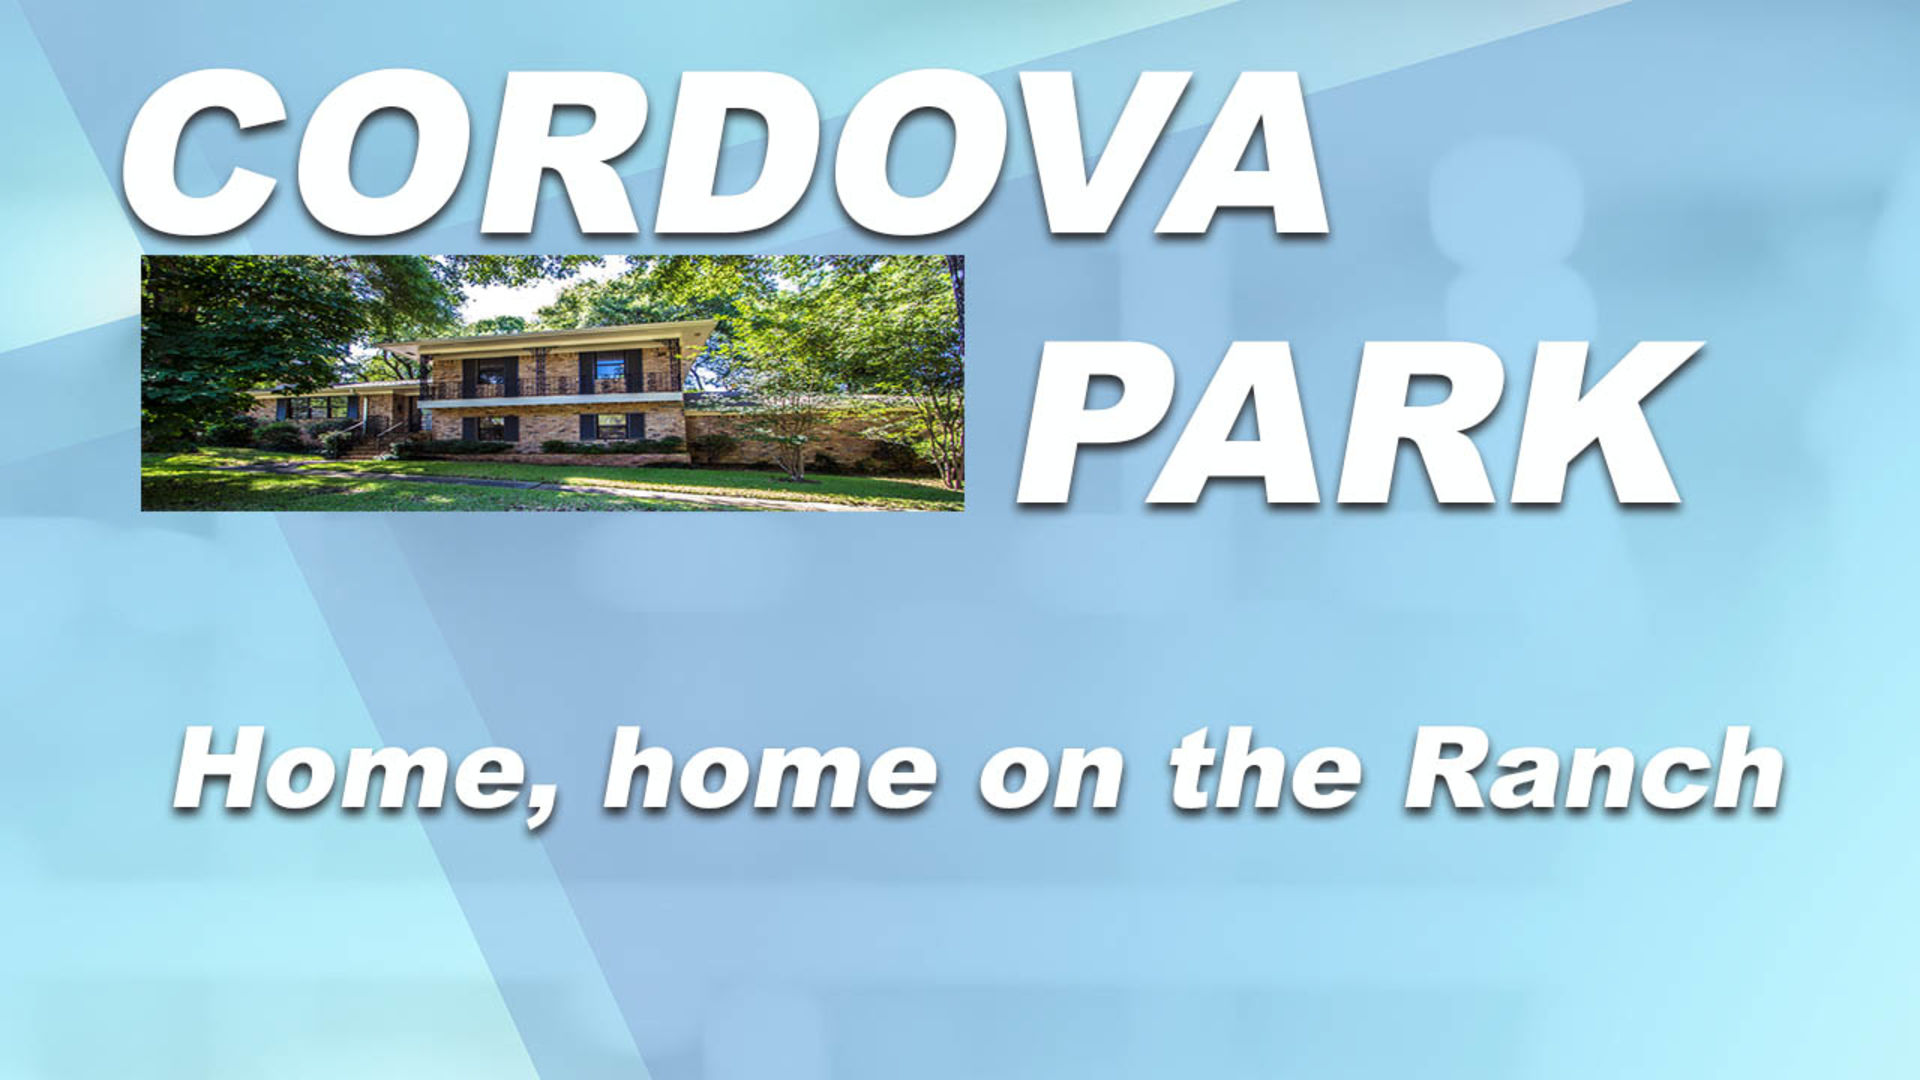 Cordova Park Home, Home on the Ranch